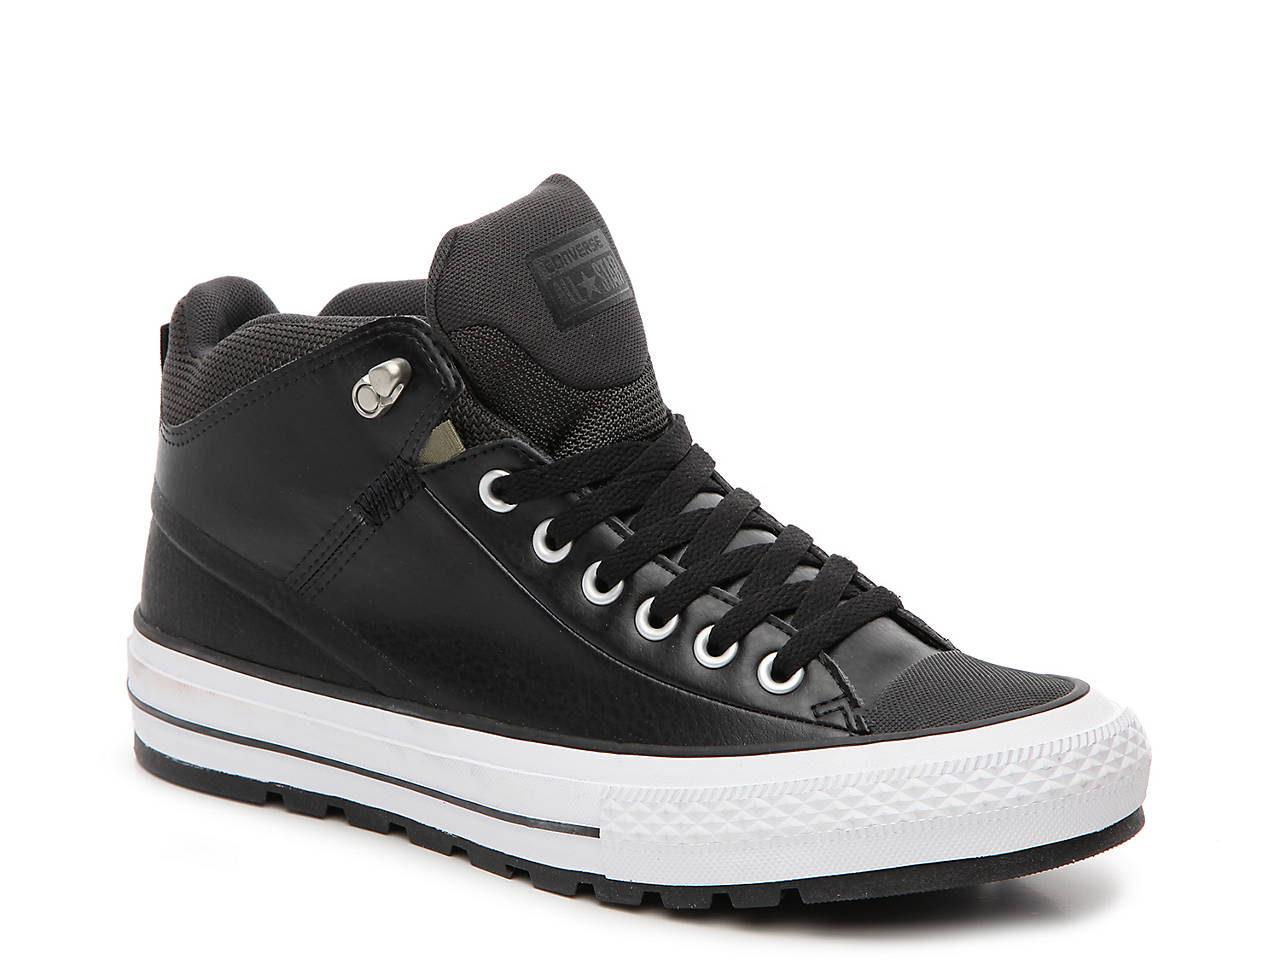 dce19c8afde Converse Chuck Taylor All Star Hi Street High-Top Sneaker Boot ...